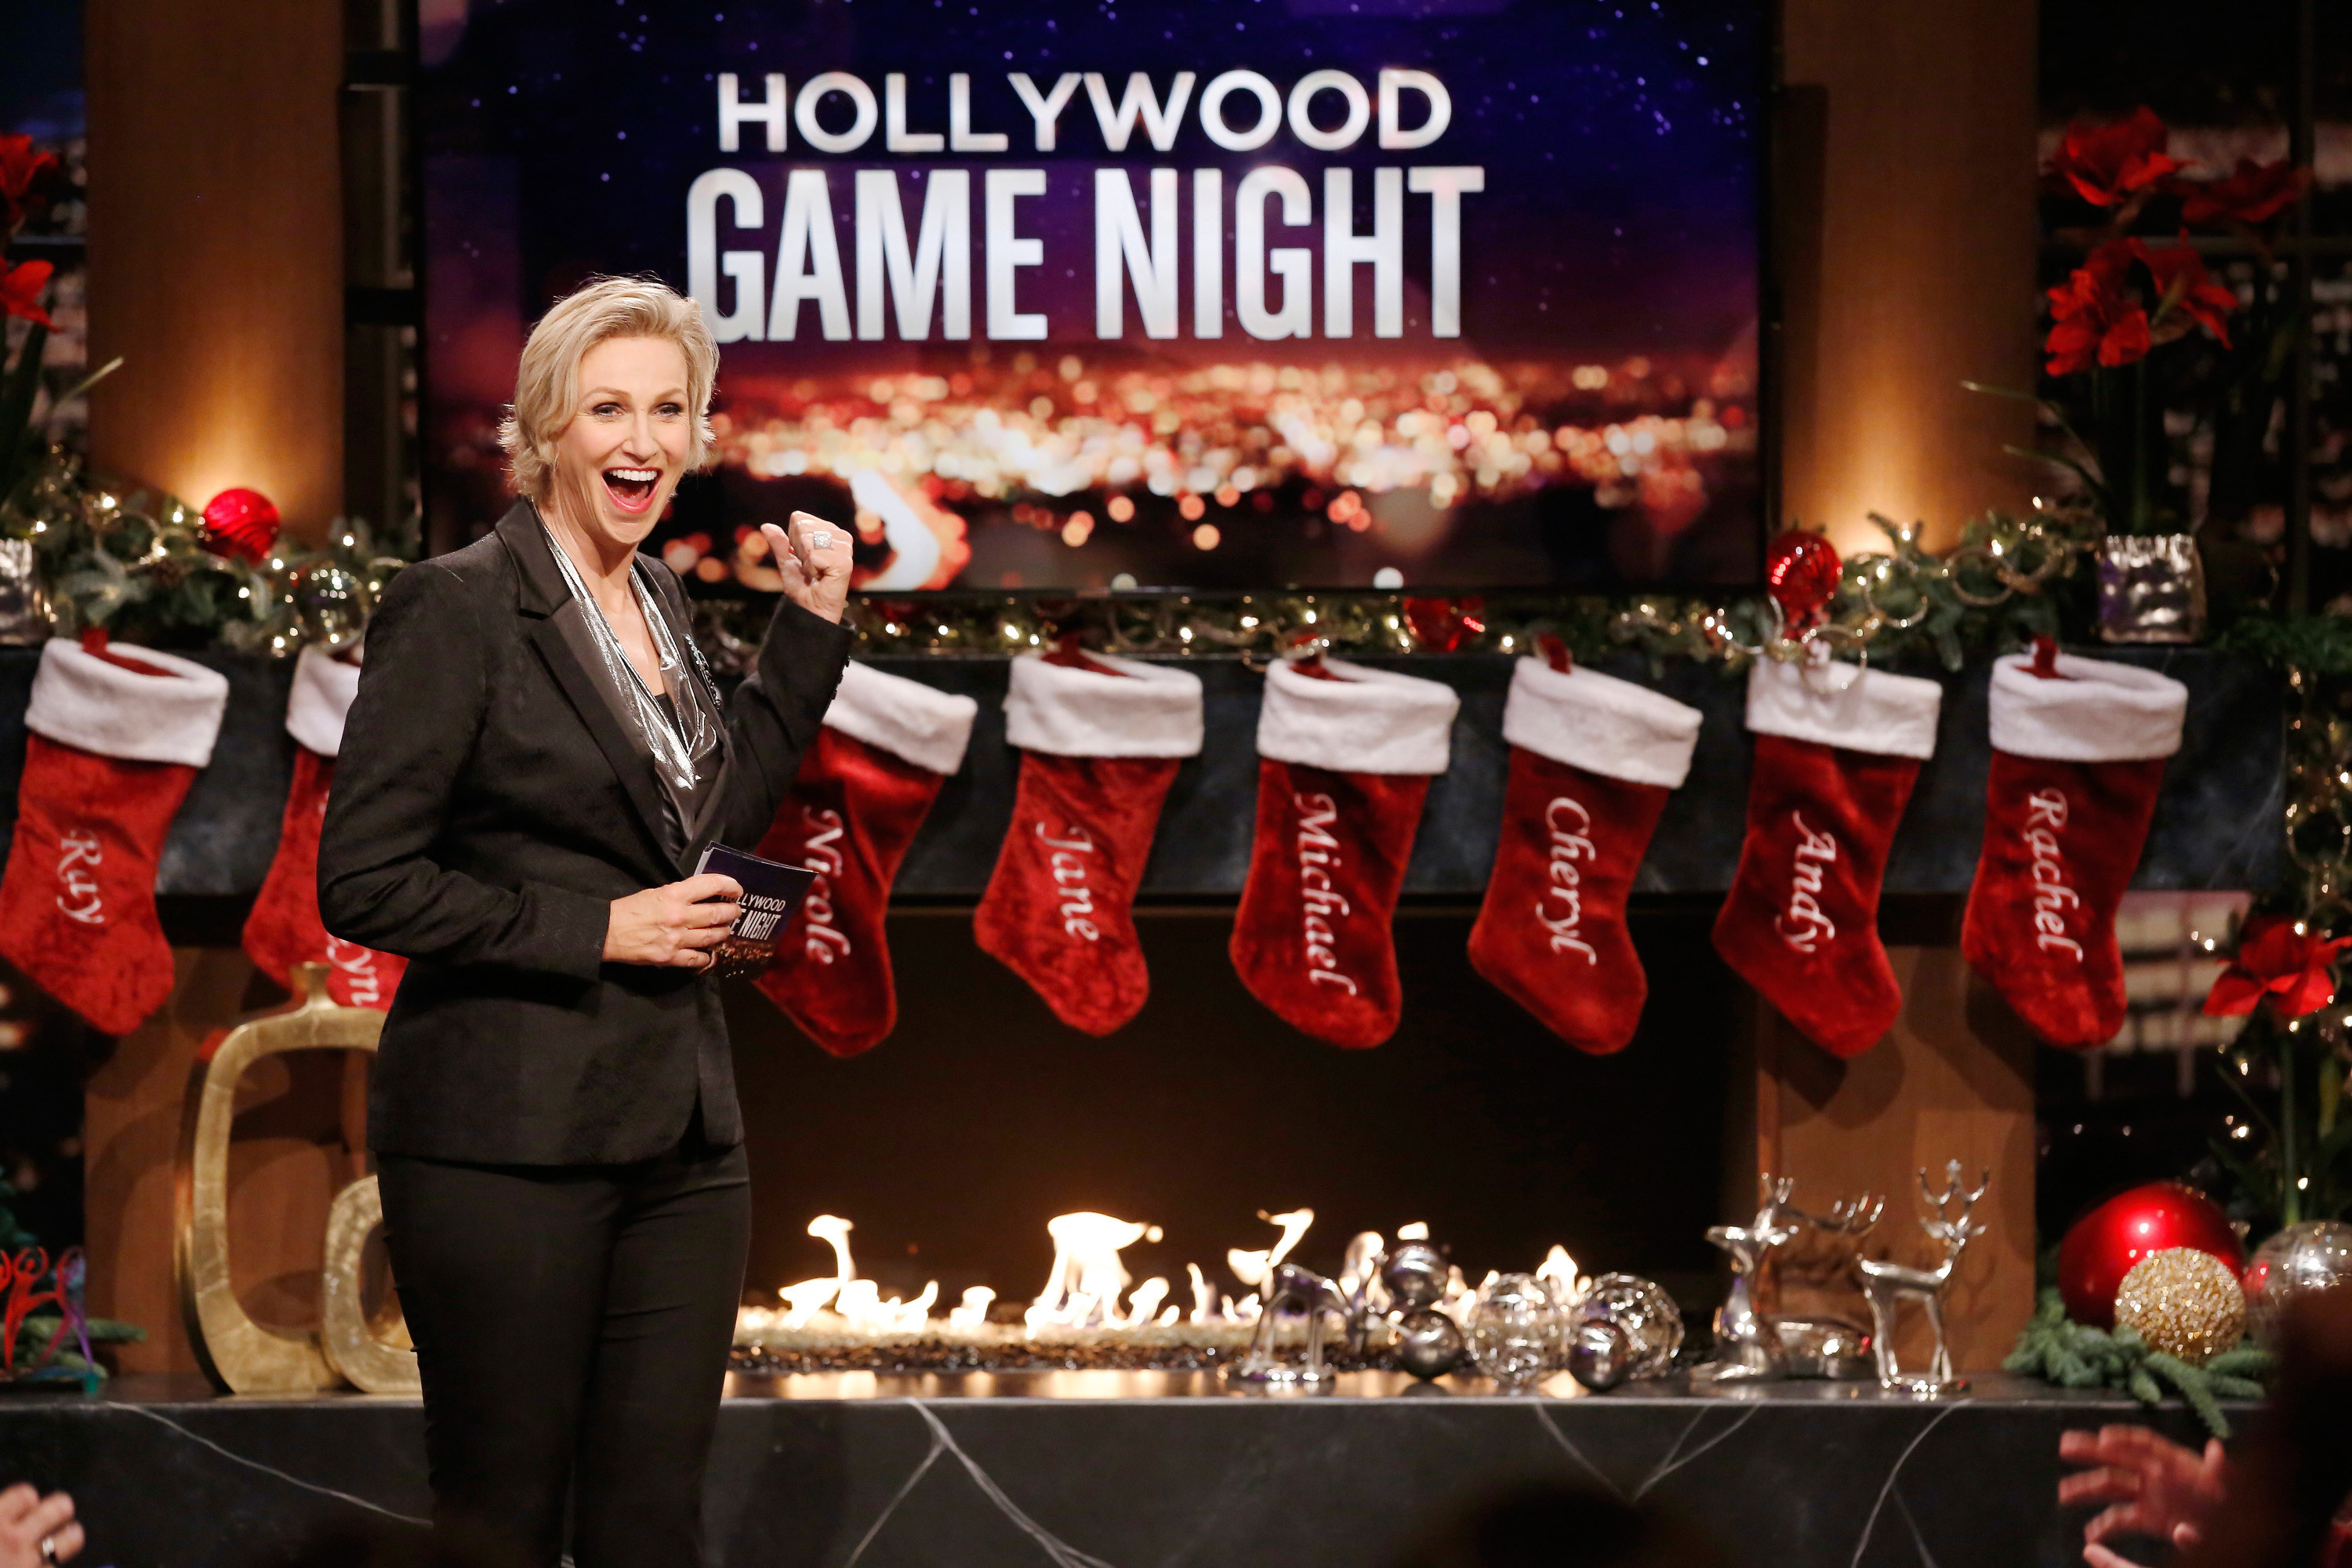 Jane Lynch hosting in front of a fireplace with stockings